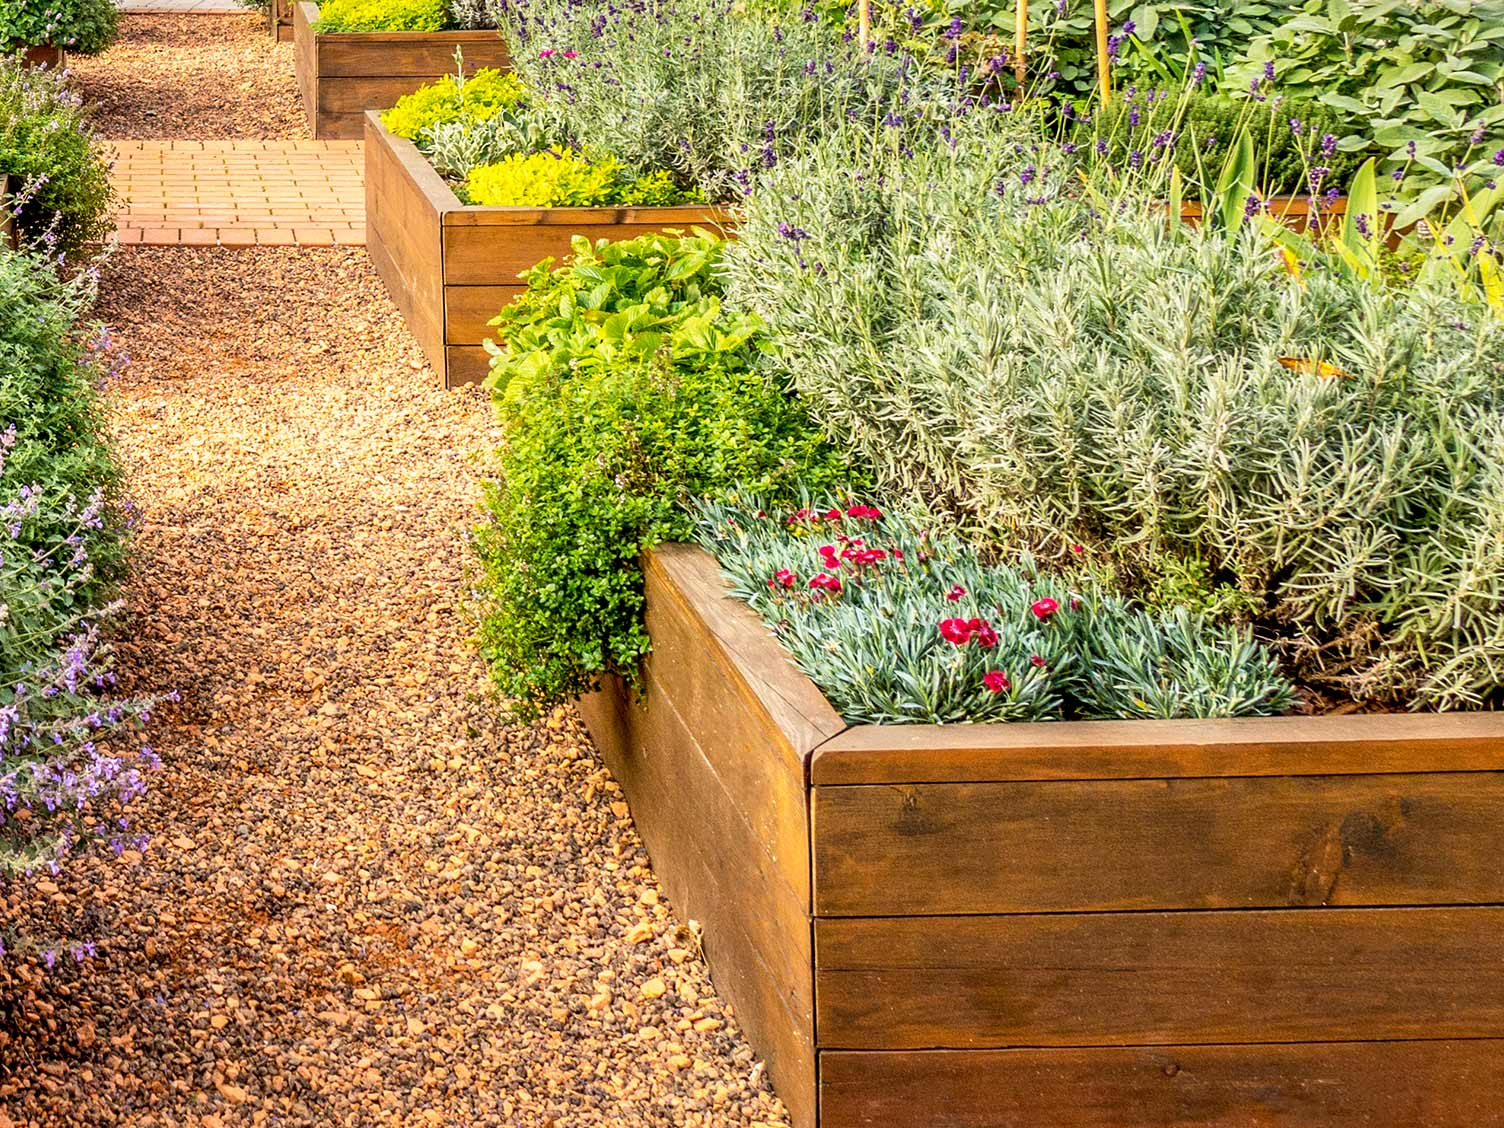 Raised flowerbeds help prevent waterlogging